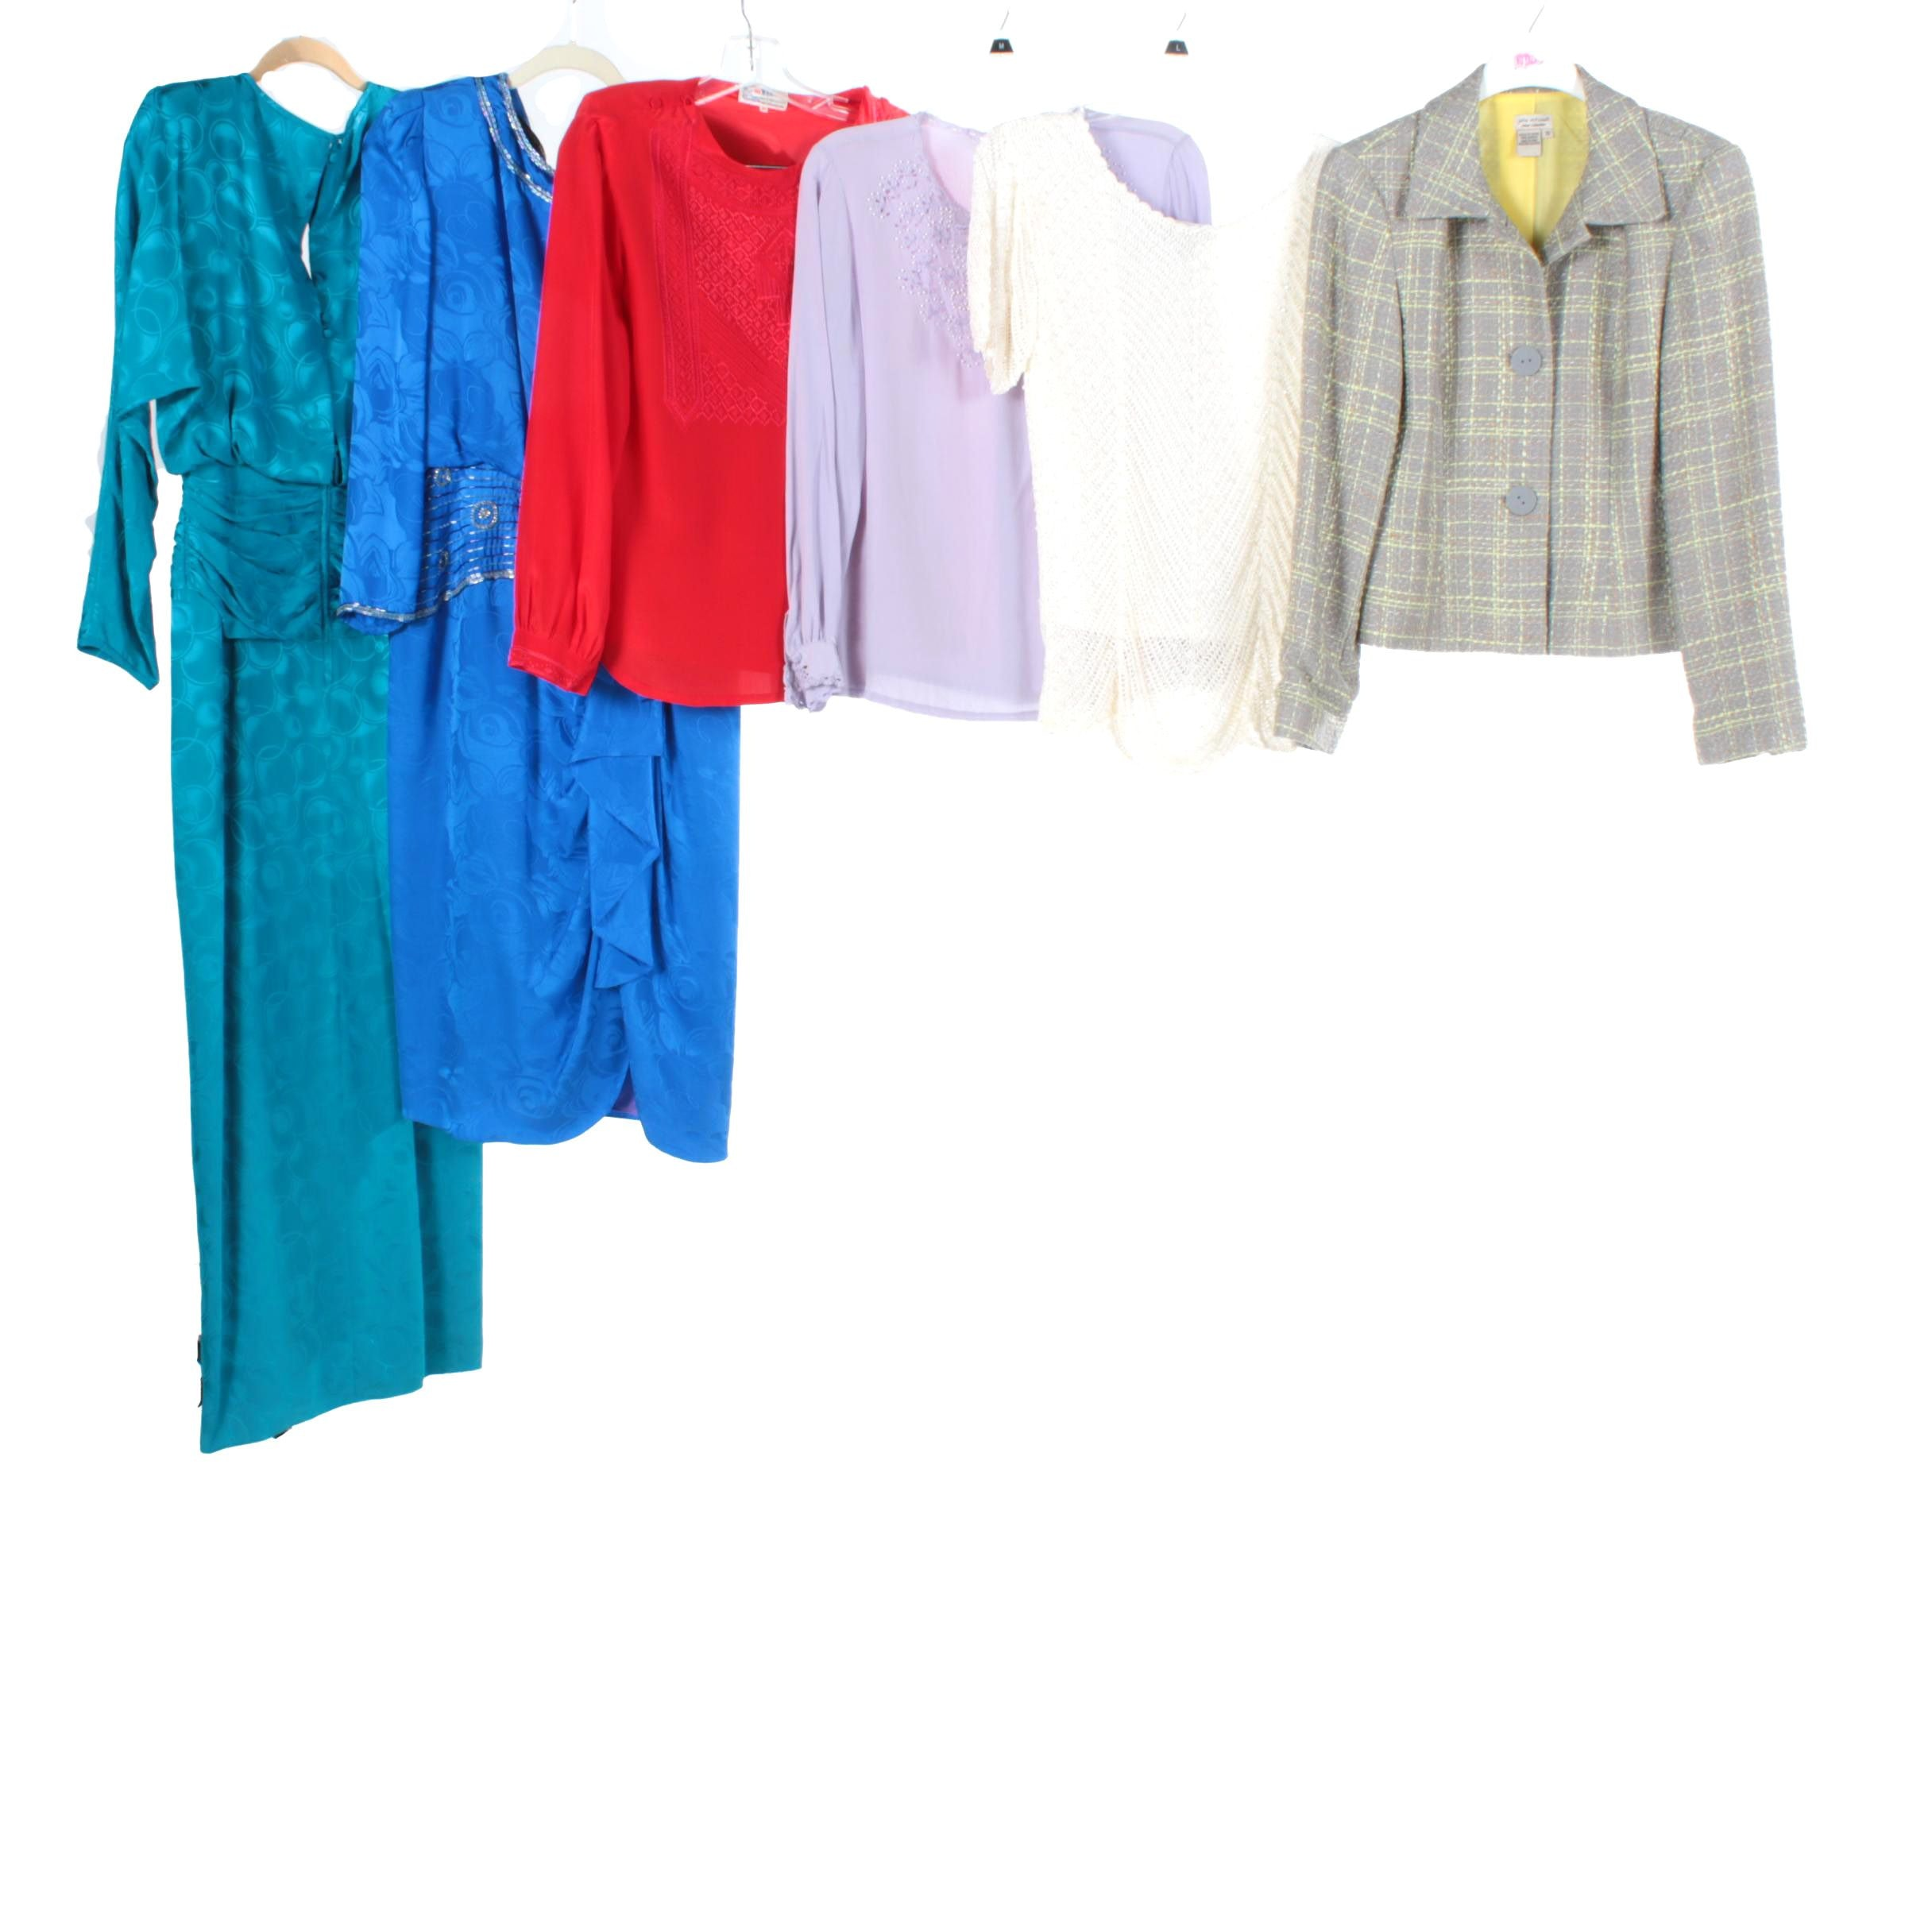 Women's Vintage Clothing Including Silk